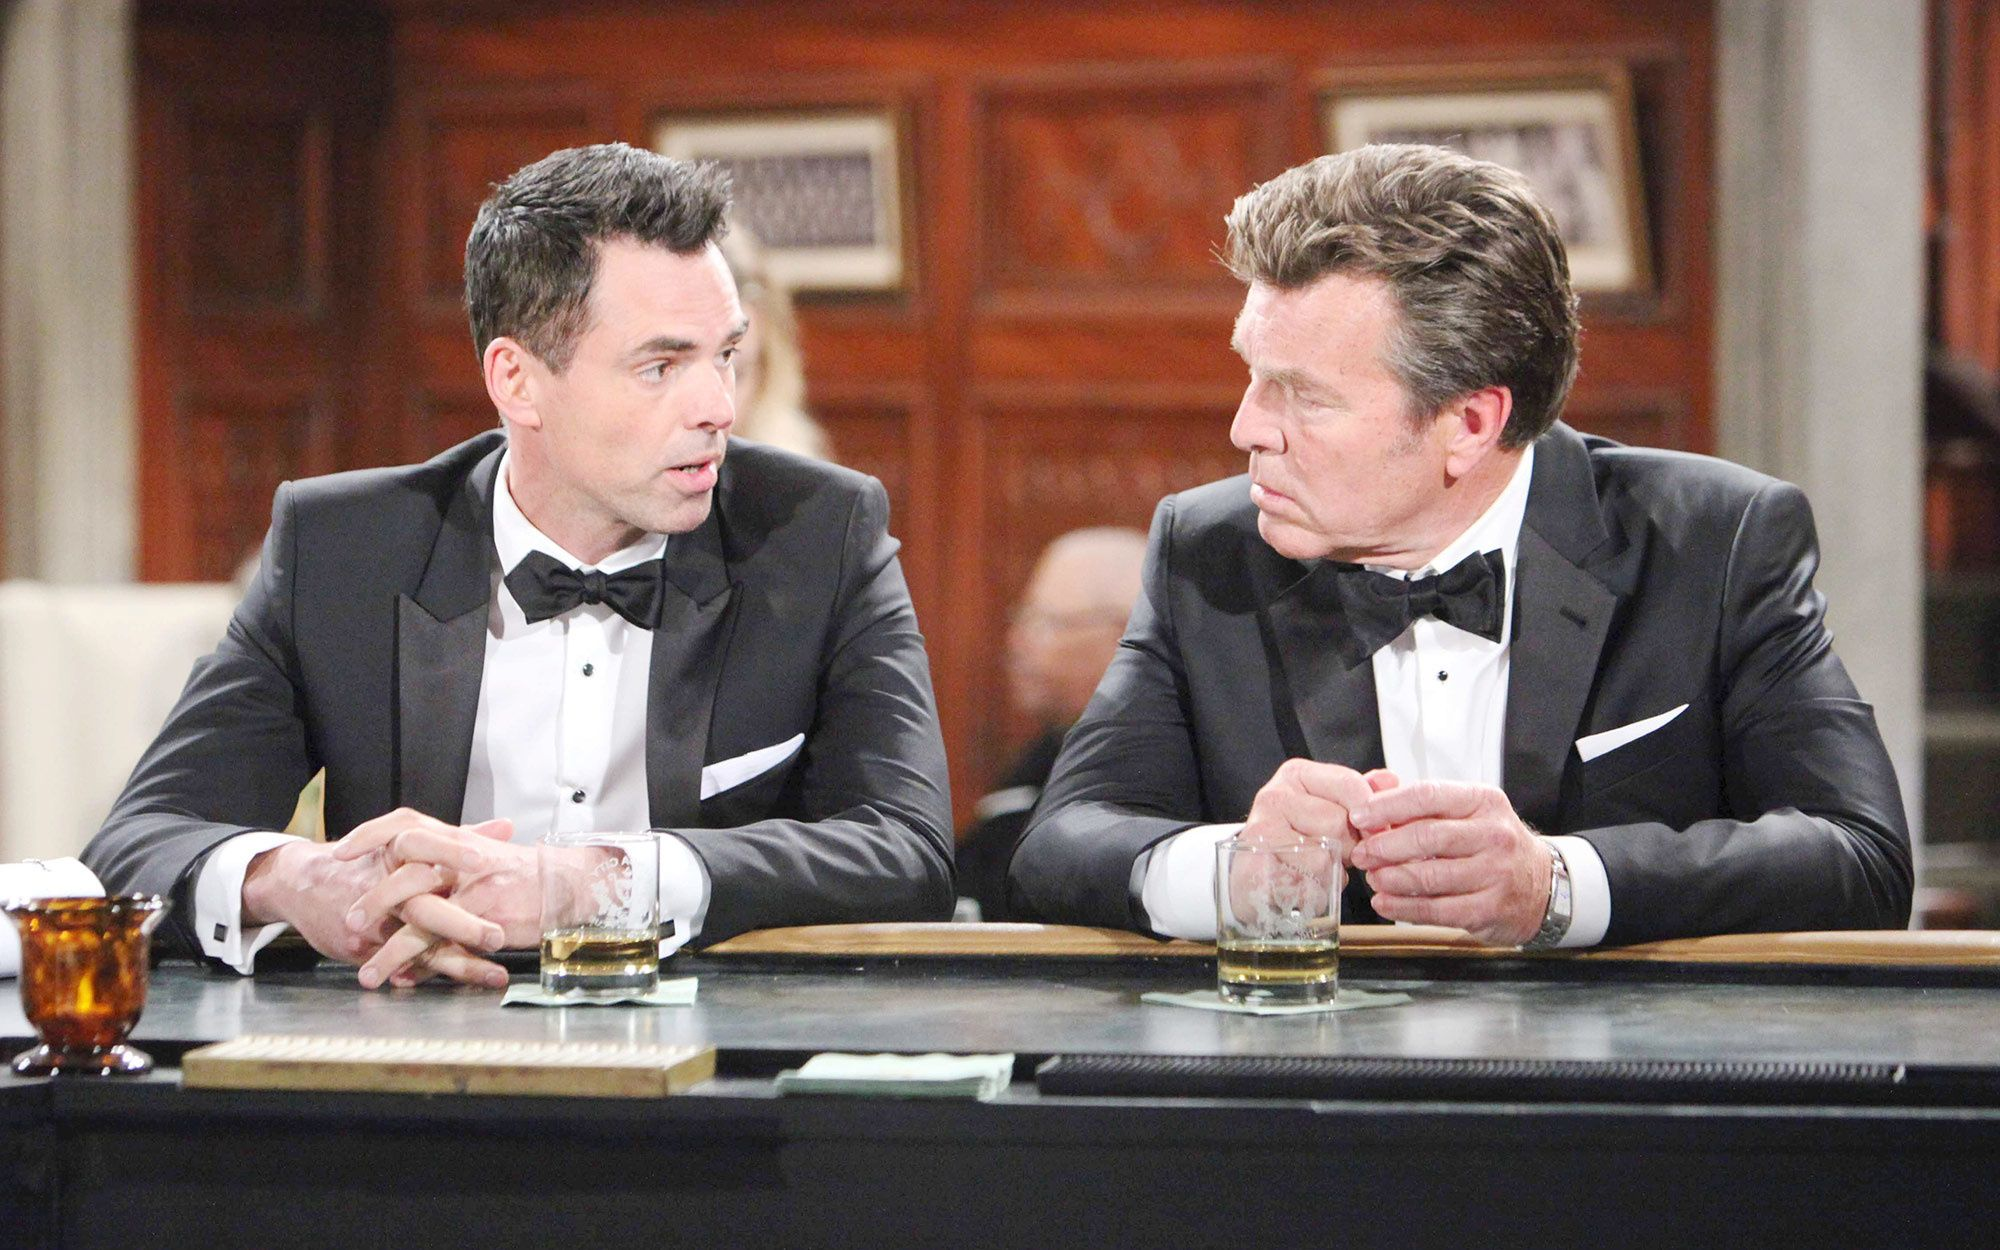 Jason Thompson and Peter Bergman on the set of The Young and the Restless.